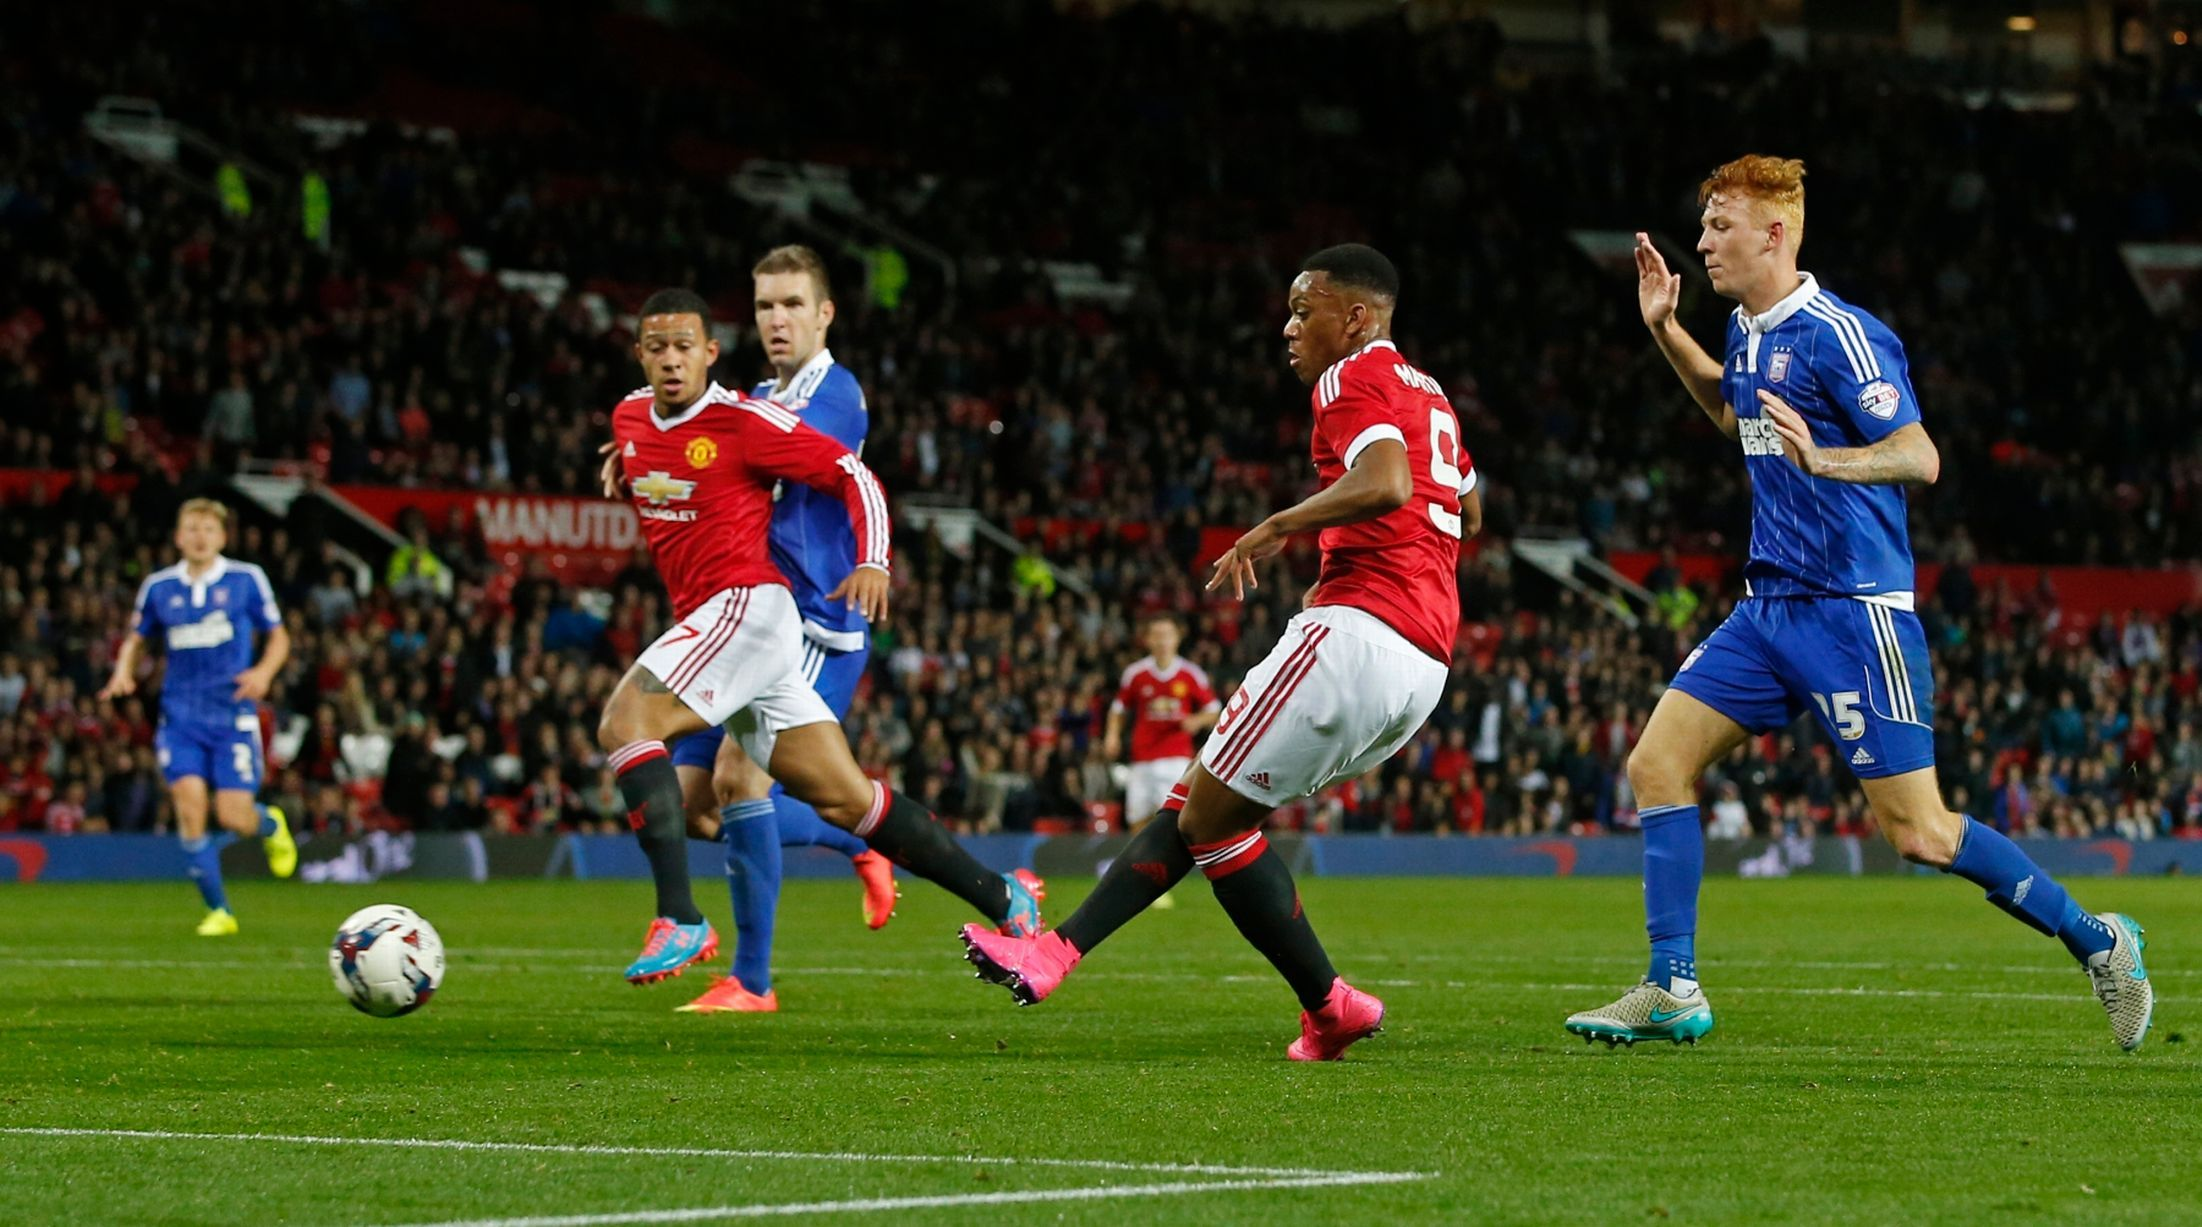 Anthony Martial Scores The Final Goal Of The Night Vs Ipswich Real Soccer Anthony Martial Soccer Fans